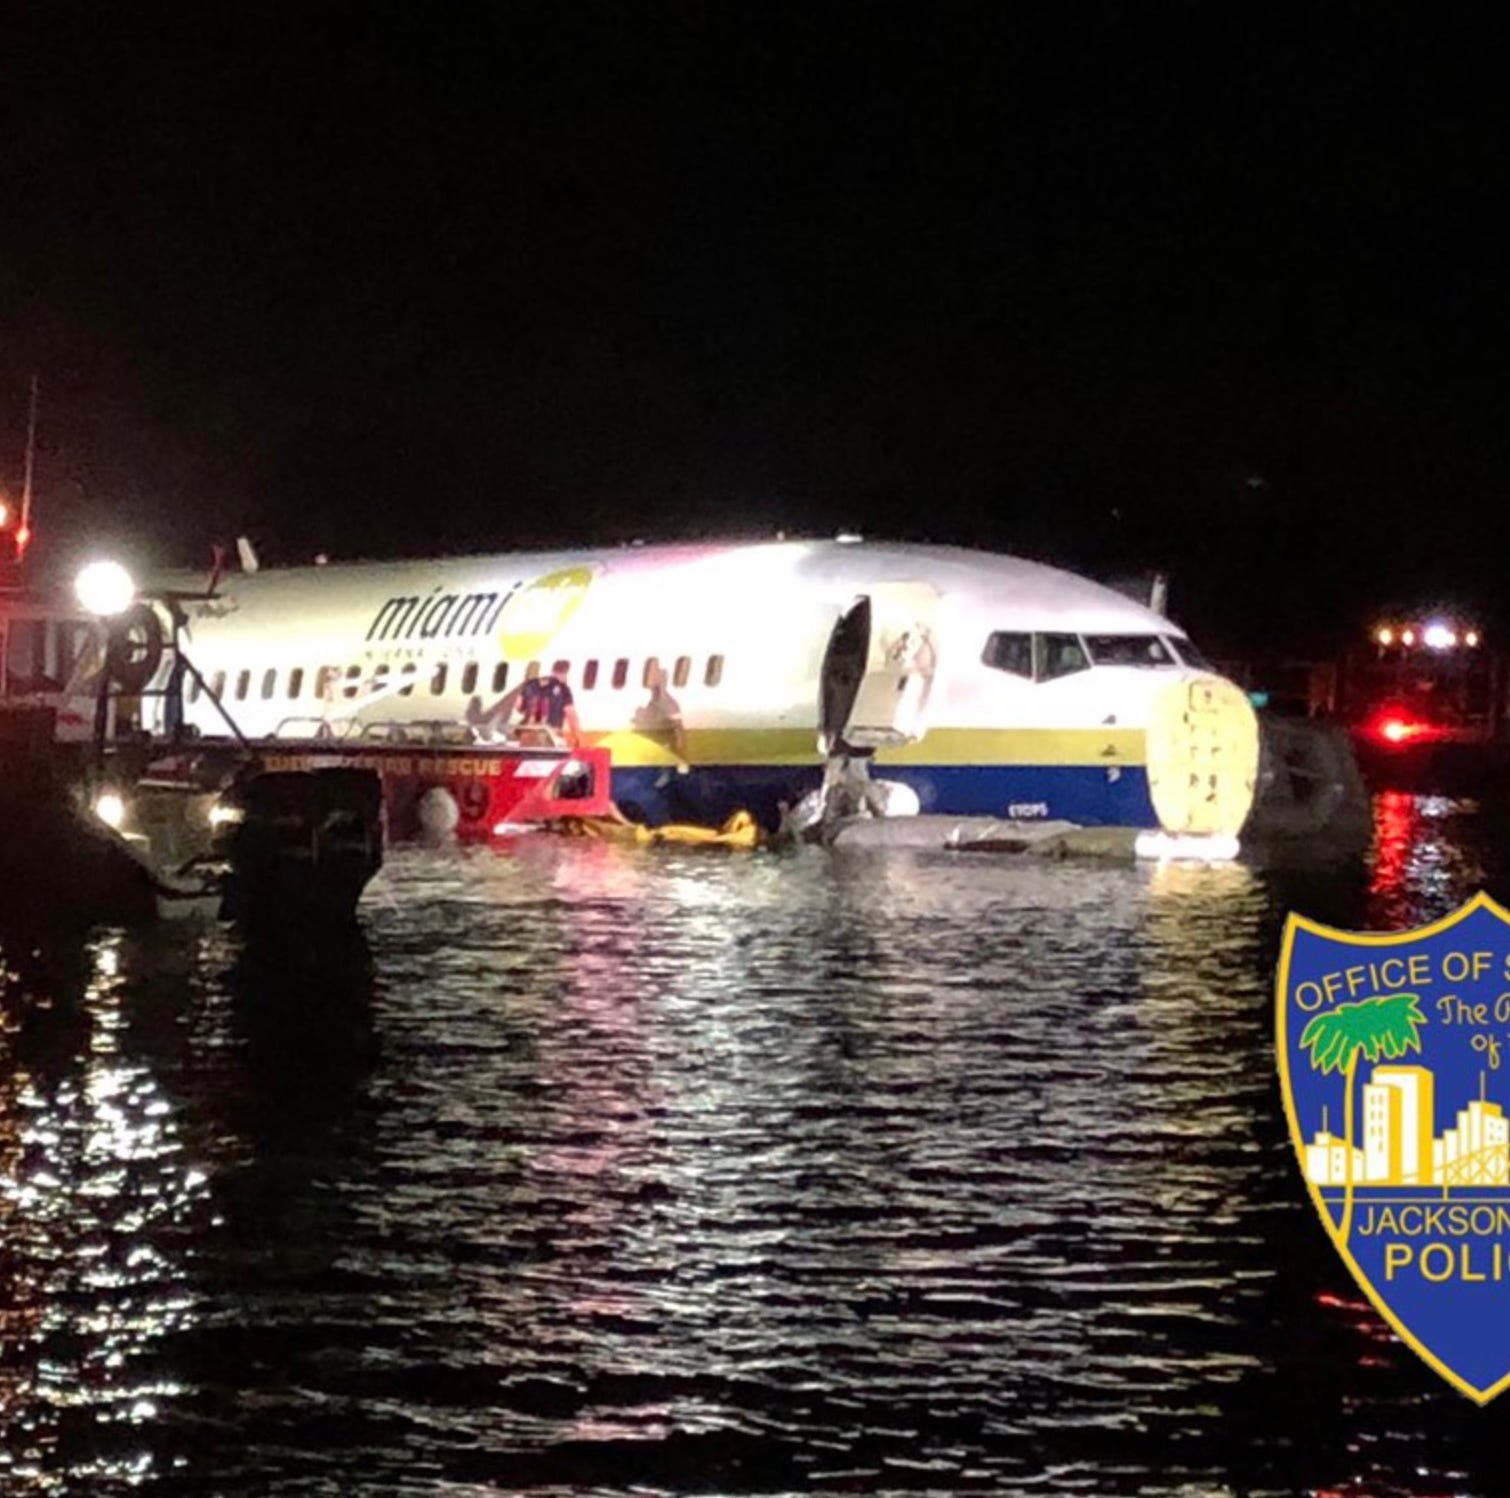 May 3, 2019; Jacksonville, FL, USA; Miami Air International flight 293 is pictured in the St. John's River after overrunning the runway at Jacksonville Naval Air Station. The flight originated from Naval Air Station Guantanamo Bay, Cuba. Mandatory Credit: Jacksonville Sheriff's Office via USA TODAY ORG